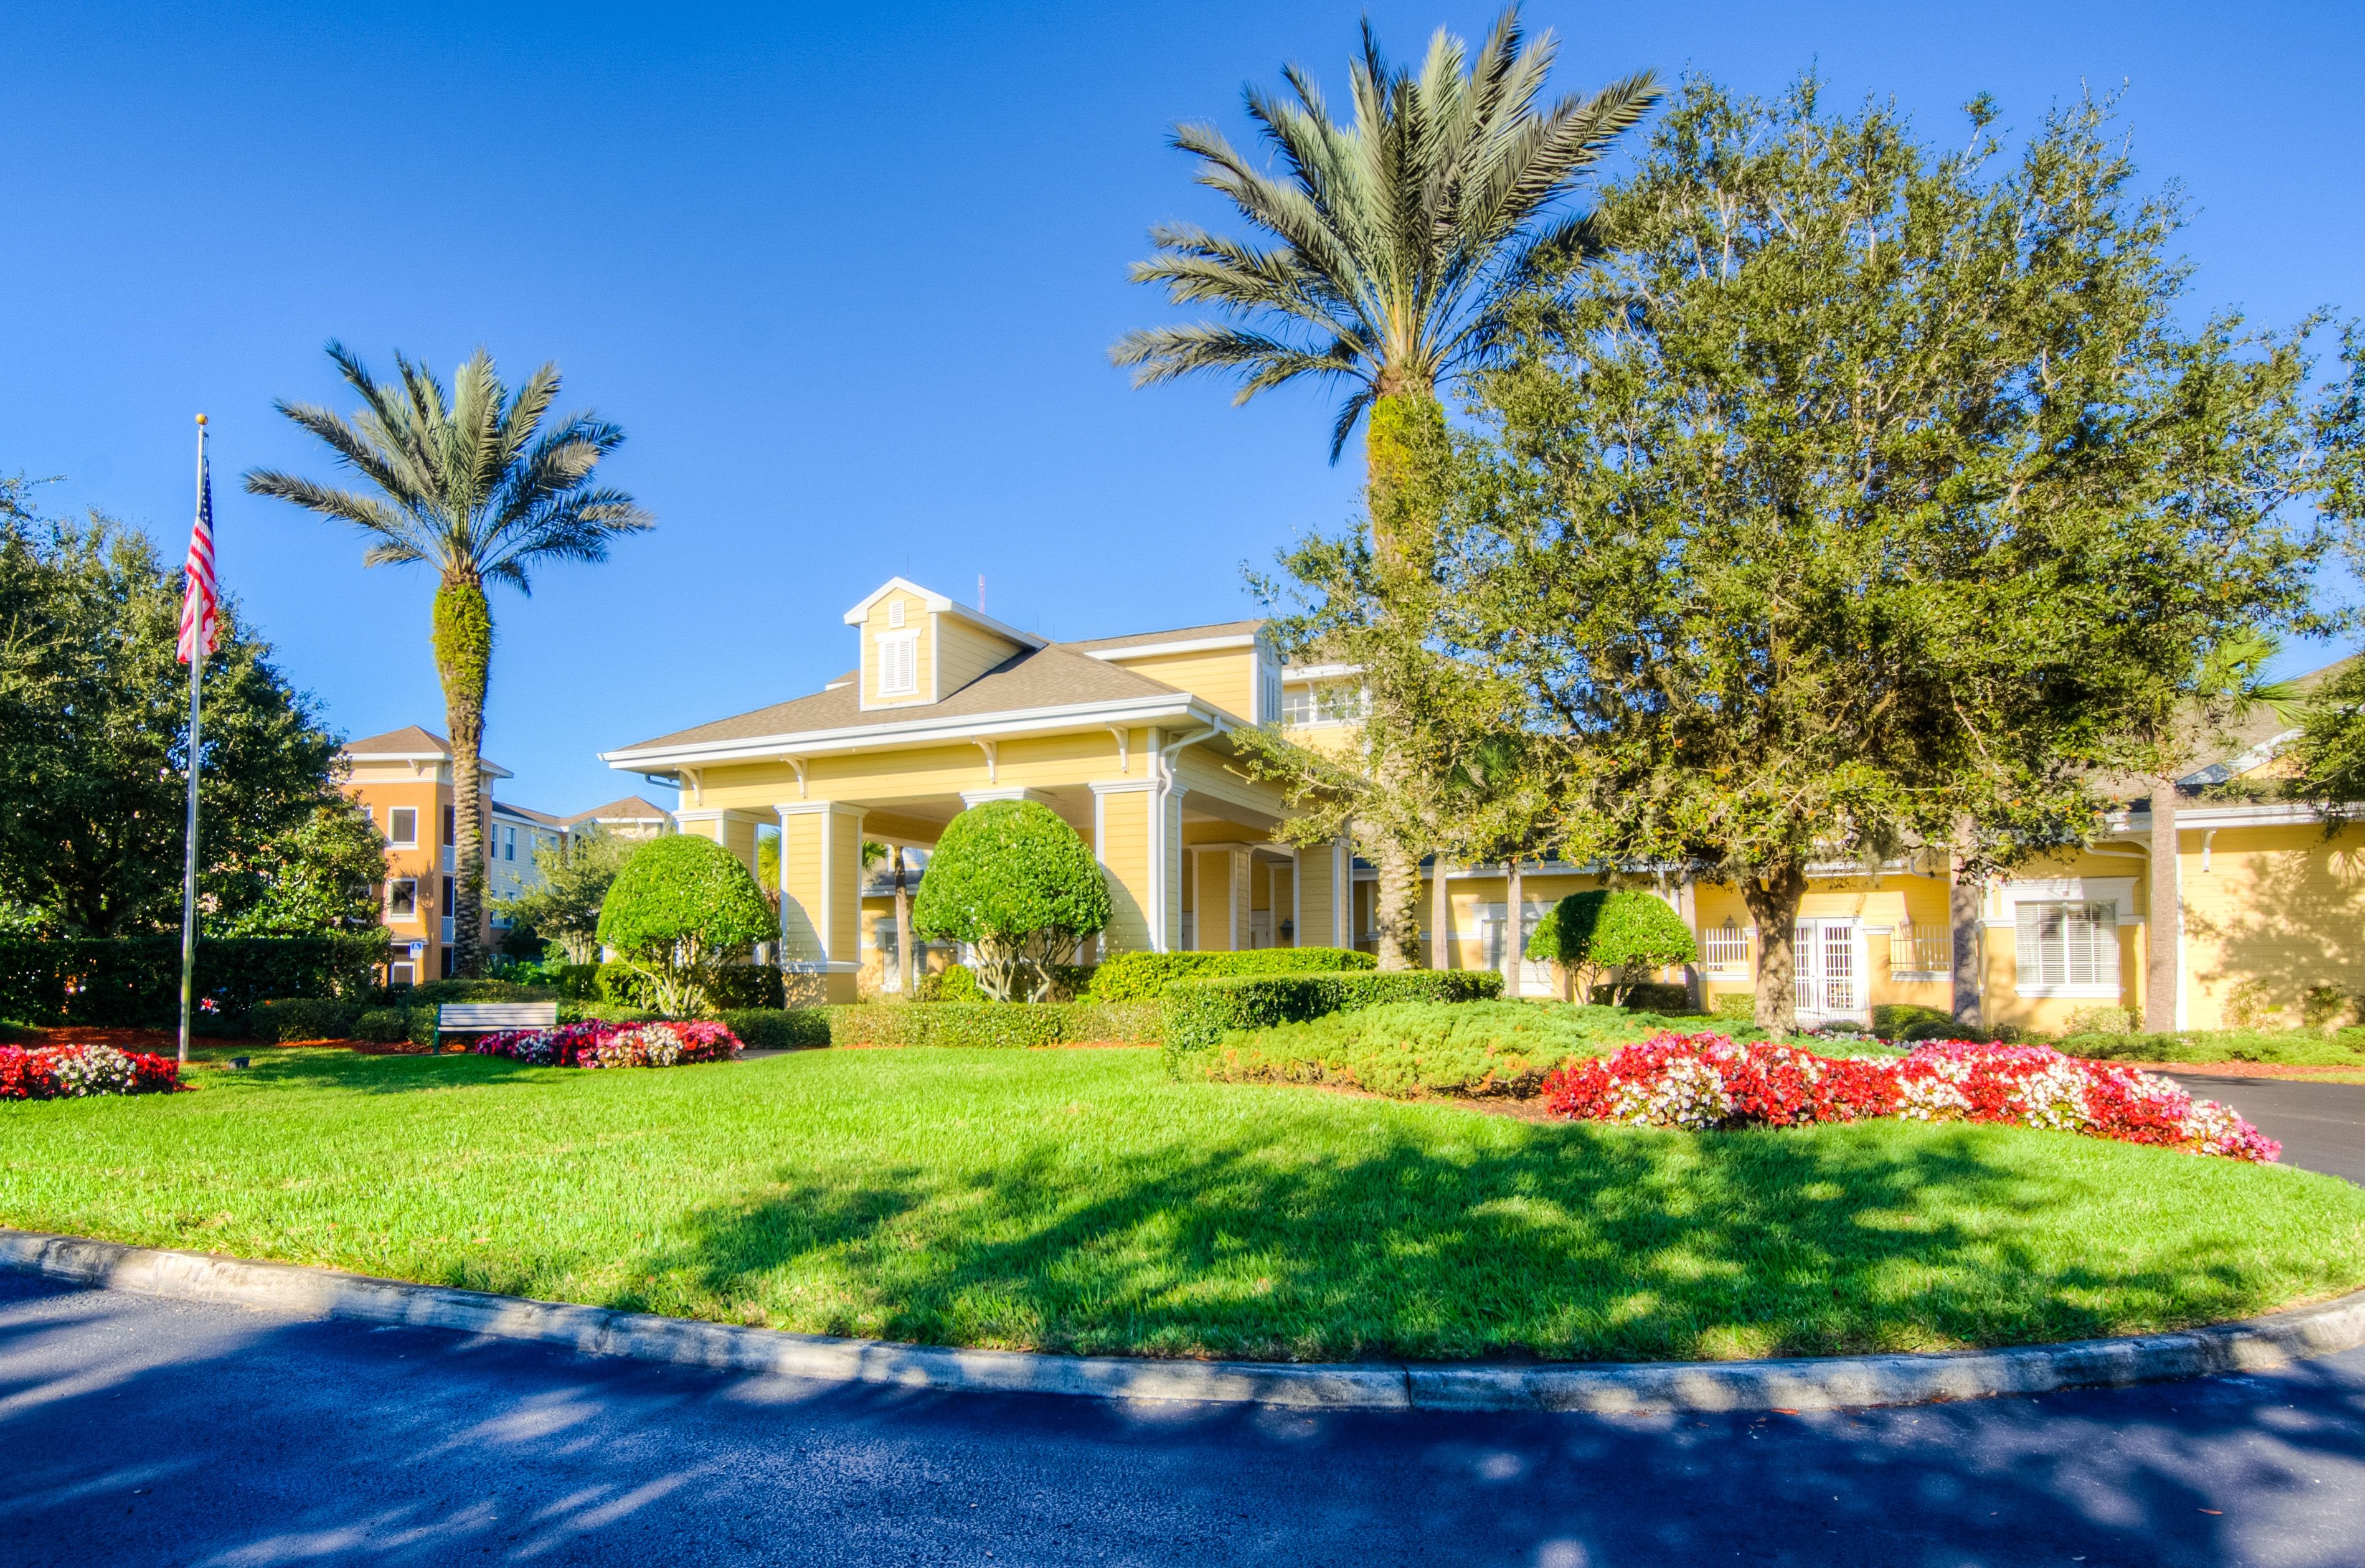 21 Unique Palm Garden Of Clearwater Florida house plans